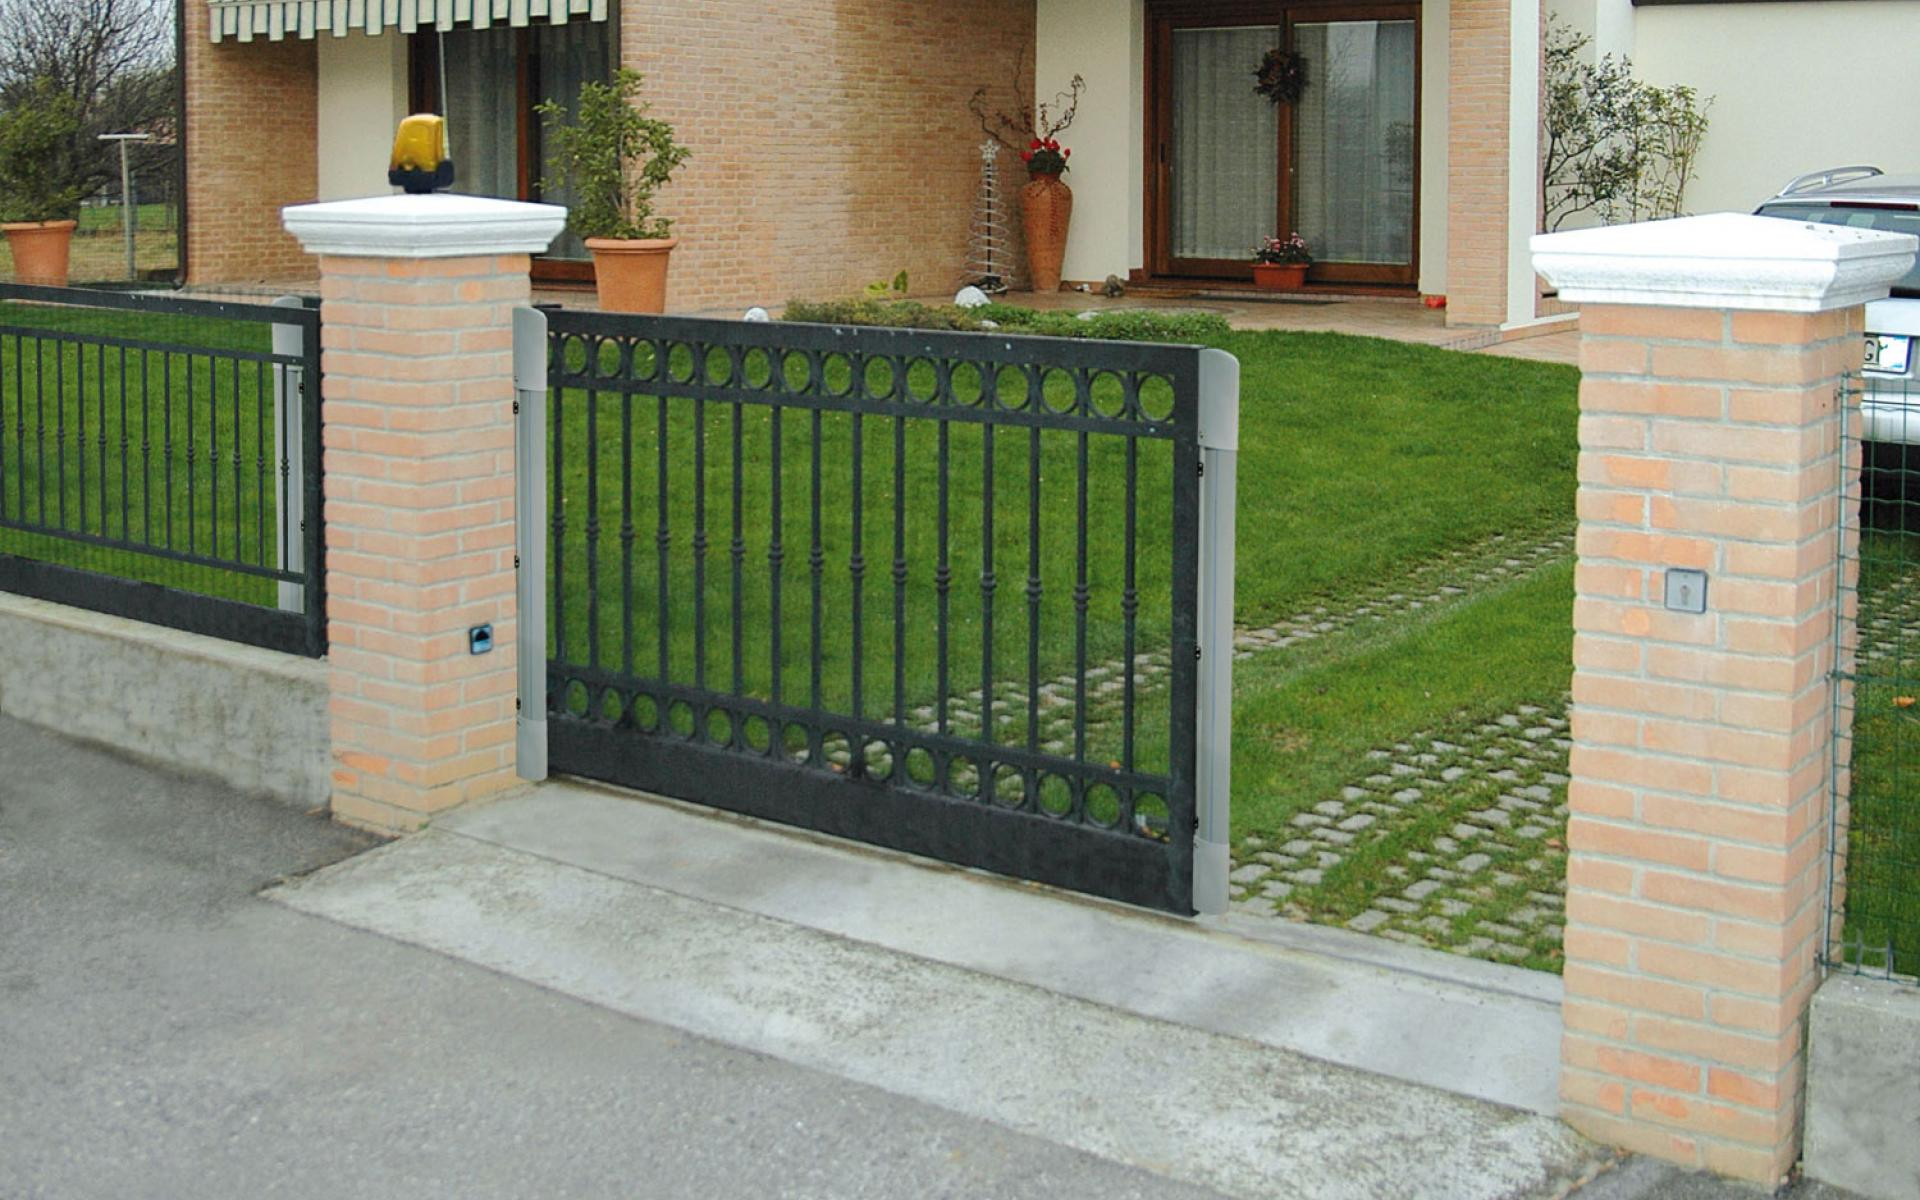 Sliding gate with CAME Df safety edge